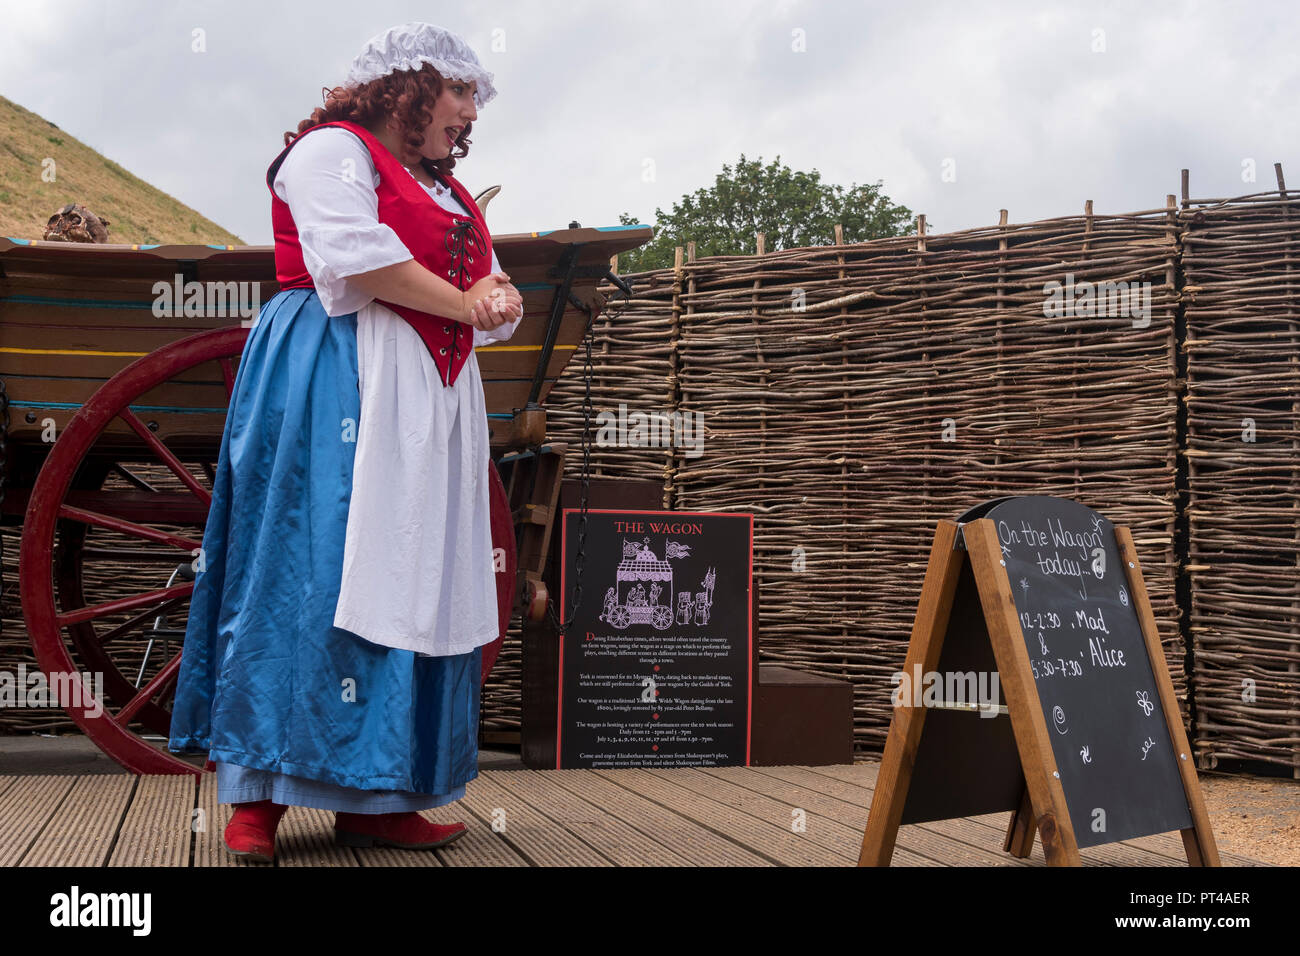 Female actress in historic costume & curly wig (playing Mad Alice) giving live talk & performance on stage, by wagon - York, Yorkshire, England, UK. - Stock Image